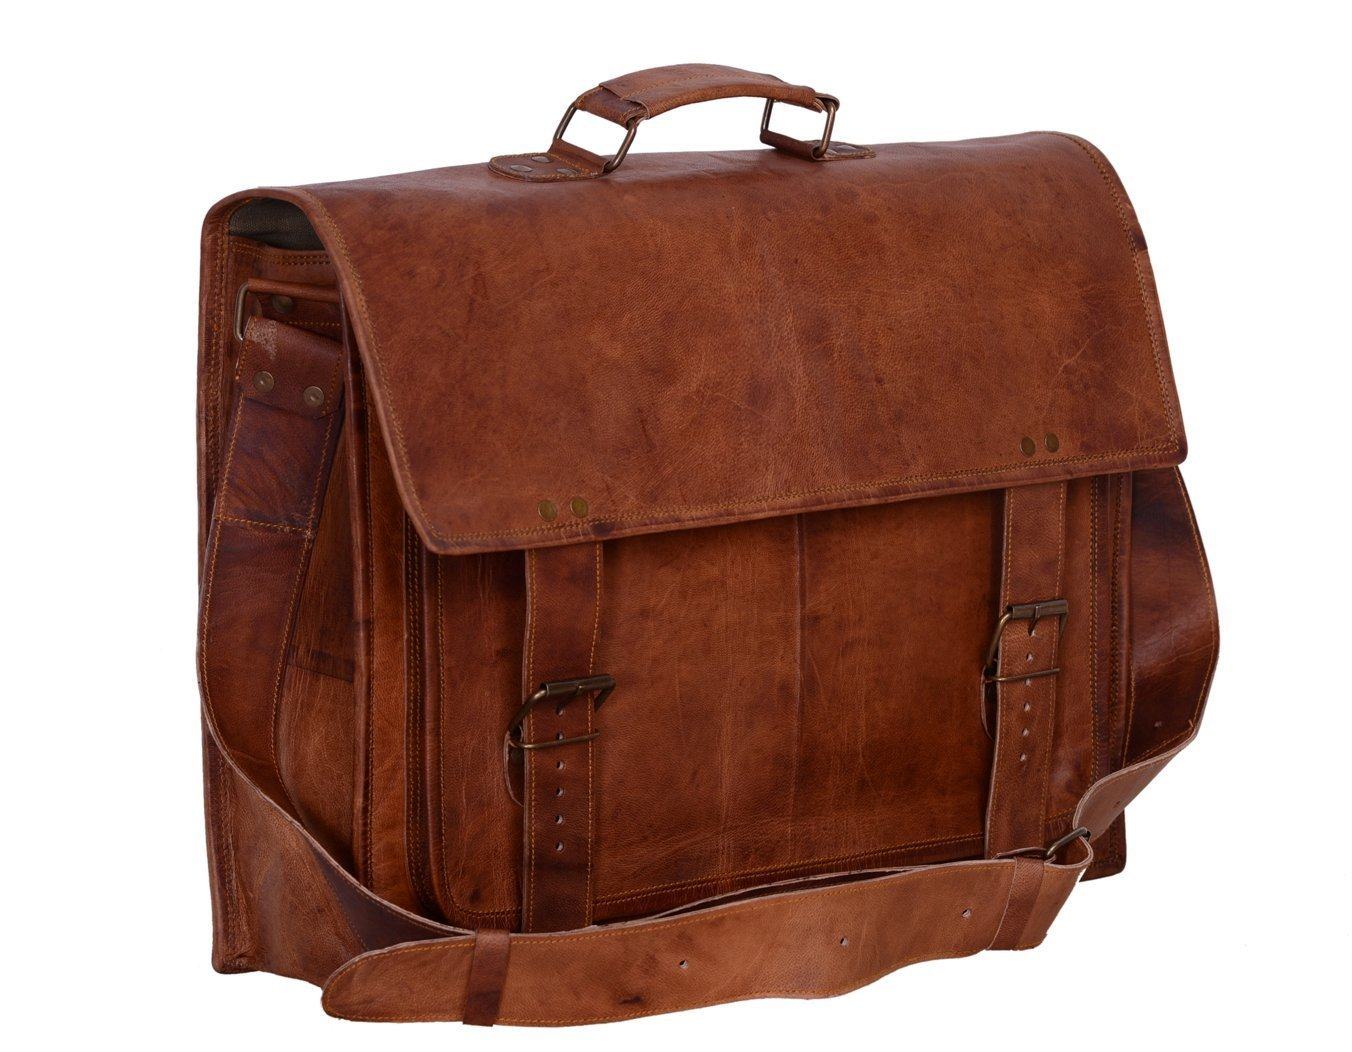 Tuzech Real Leather Messenger Bags Laptop Briefcase Satchel Mens Bag Fits Laptop Upto 15.6 inches The Immart